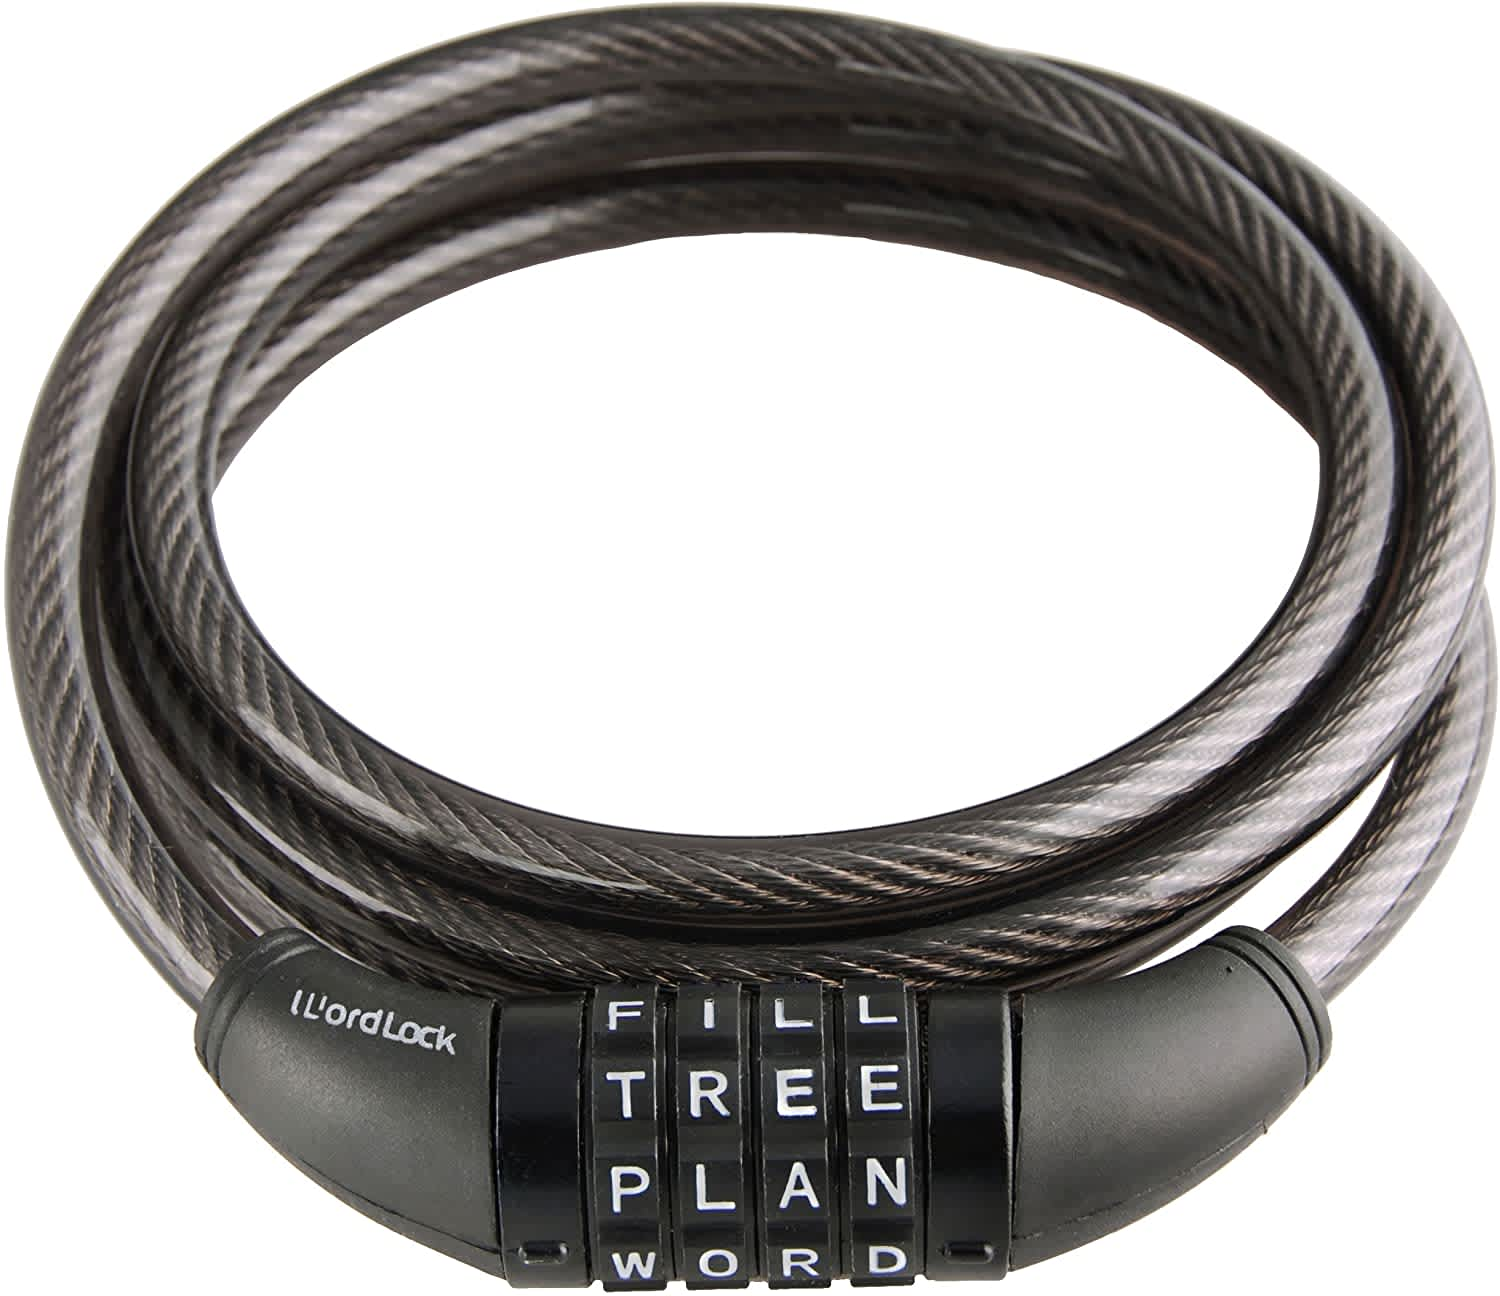 Wordlock 4-Dial Cable Combination Lock